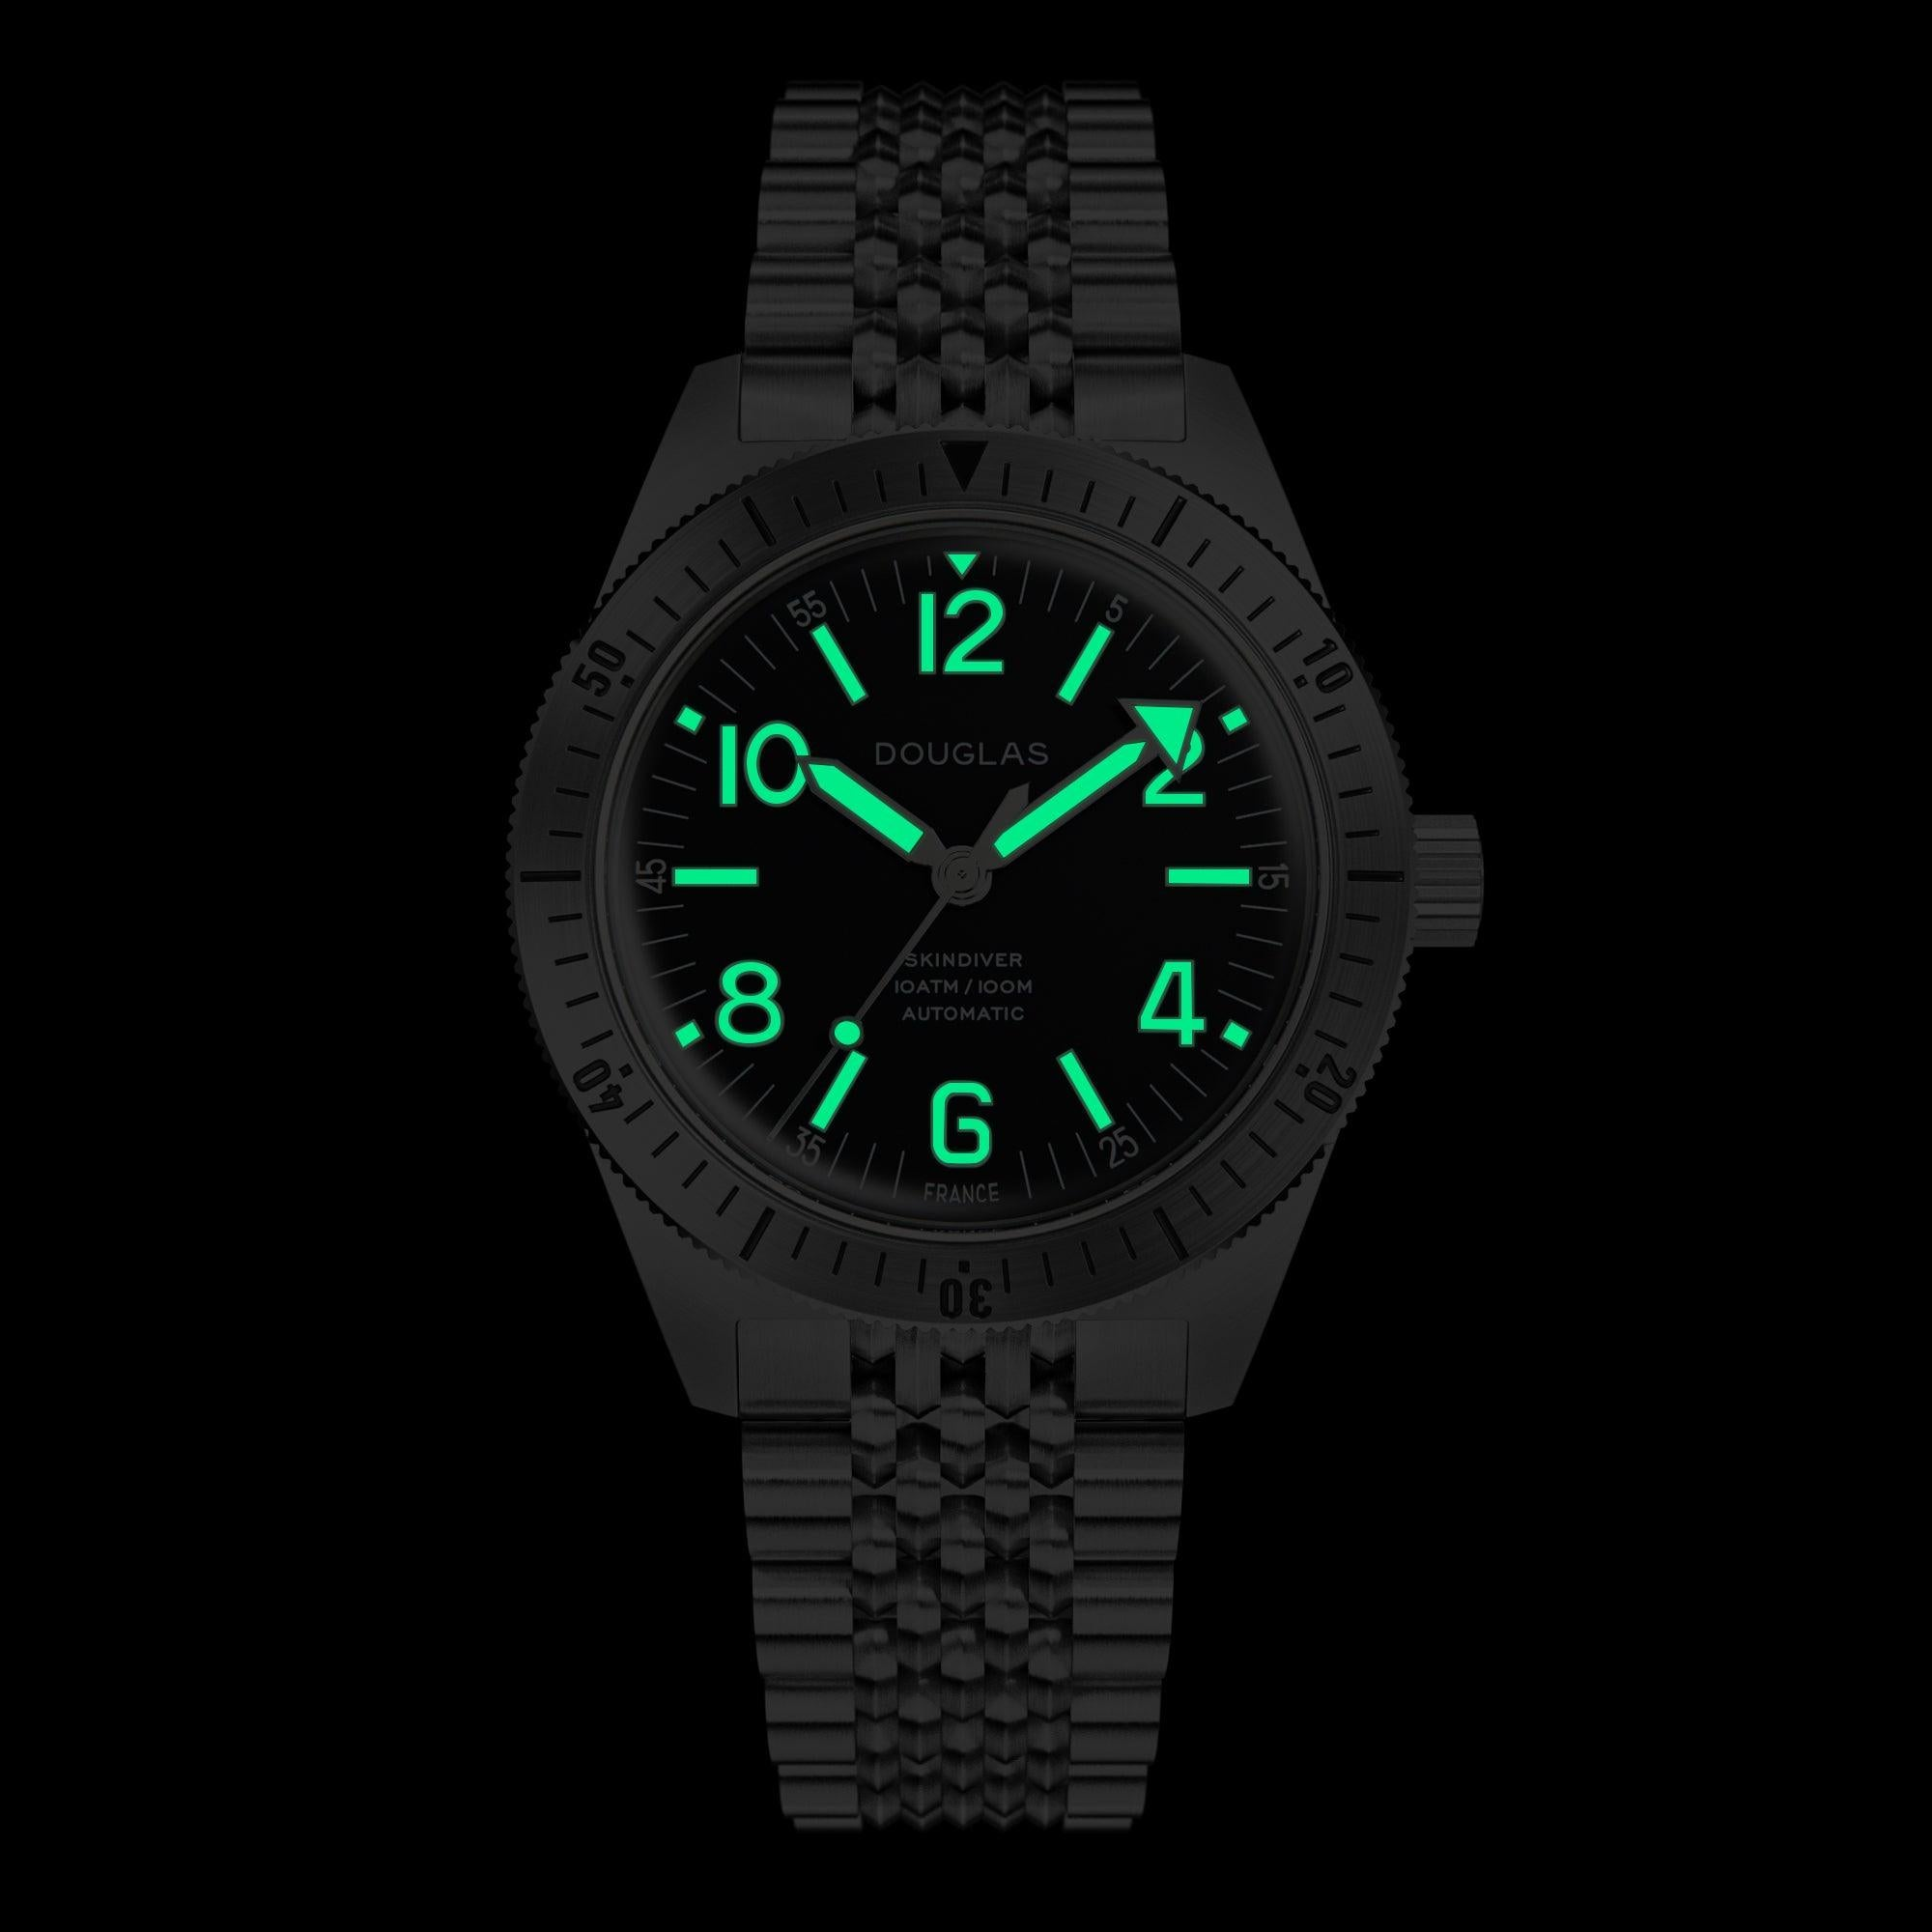 Skindiver Professional Bracelet Tool-Watch - Green Lum & Black Dial